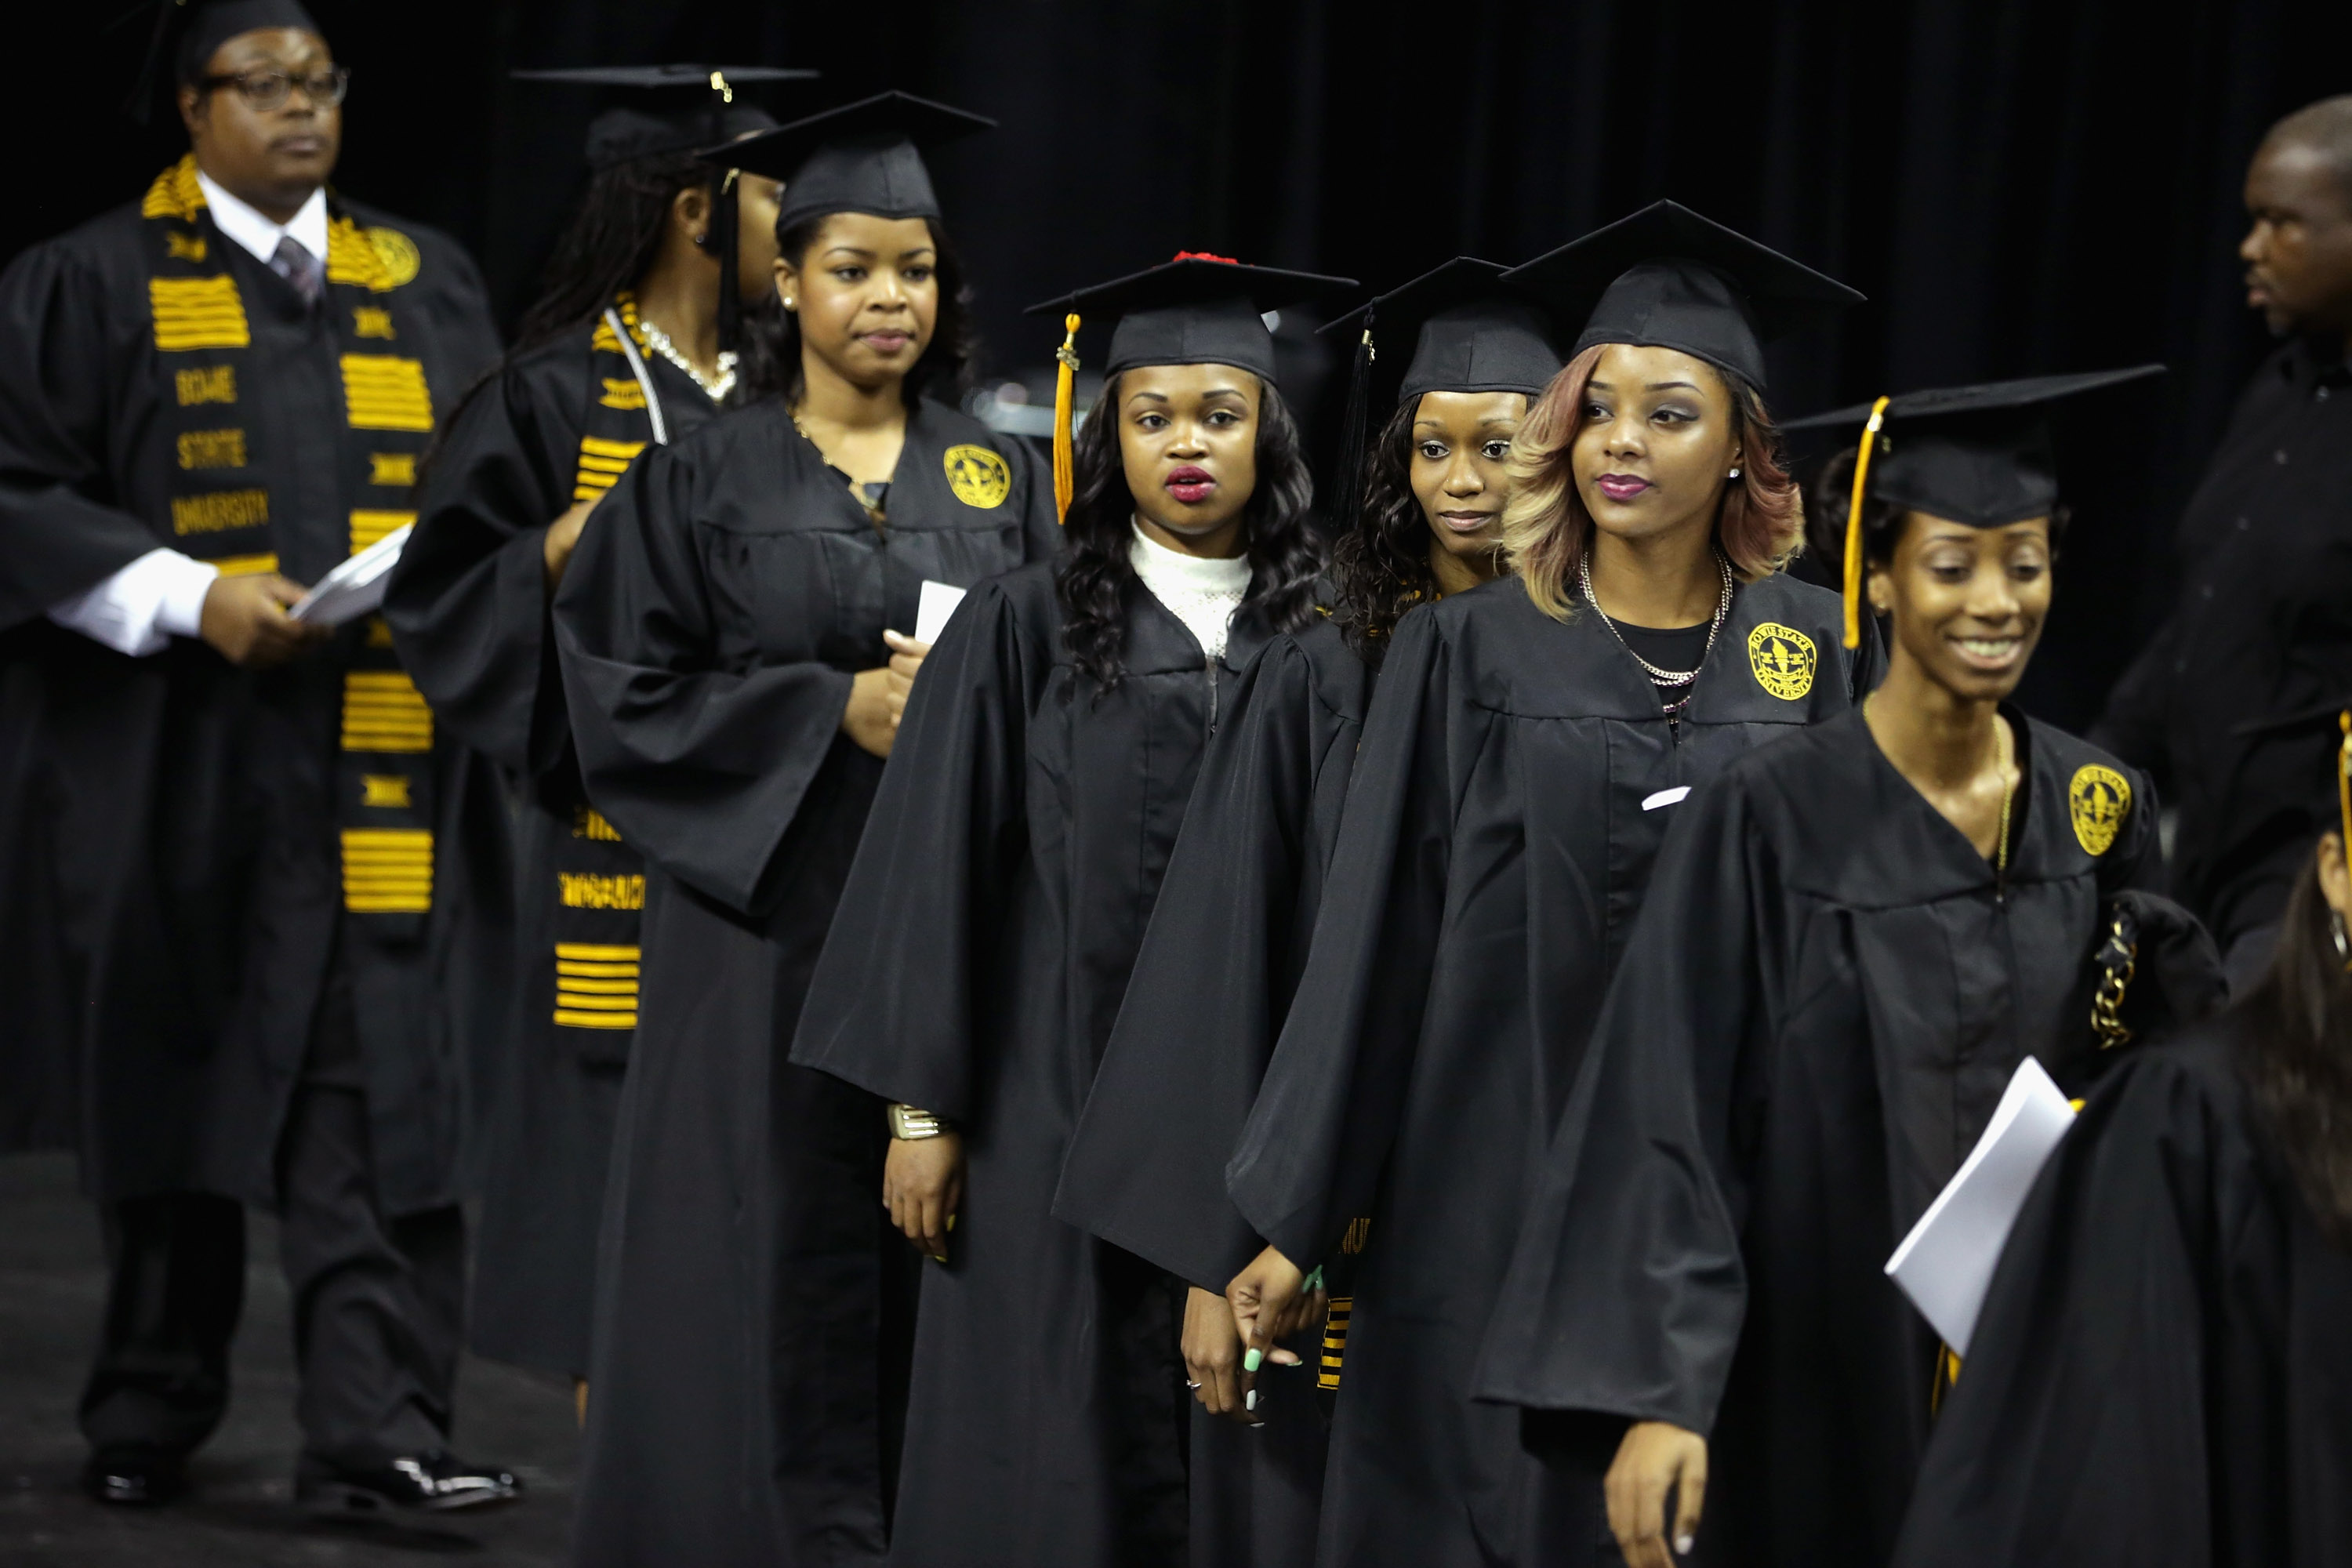 http://The%20Continued%20Student%20Loan%20Crisis%20for%20Black%20Borrowers